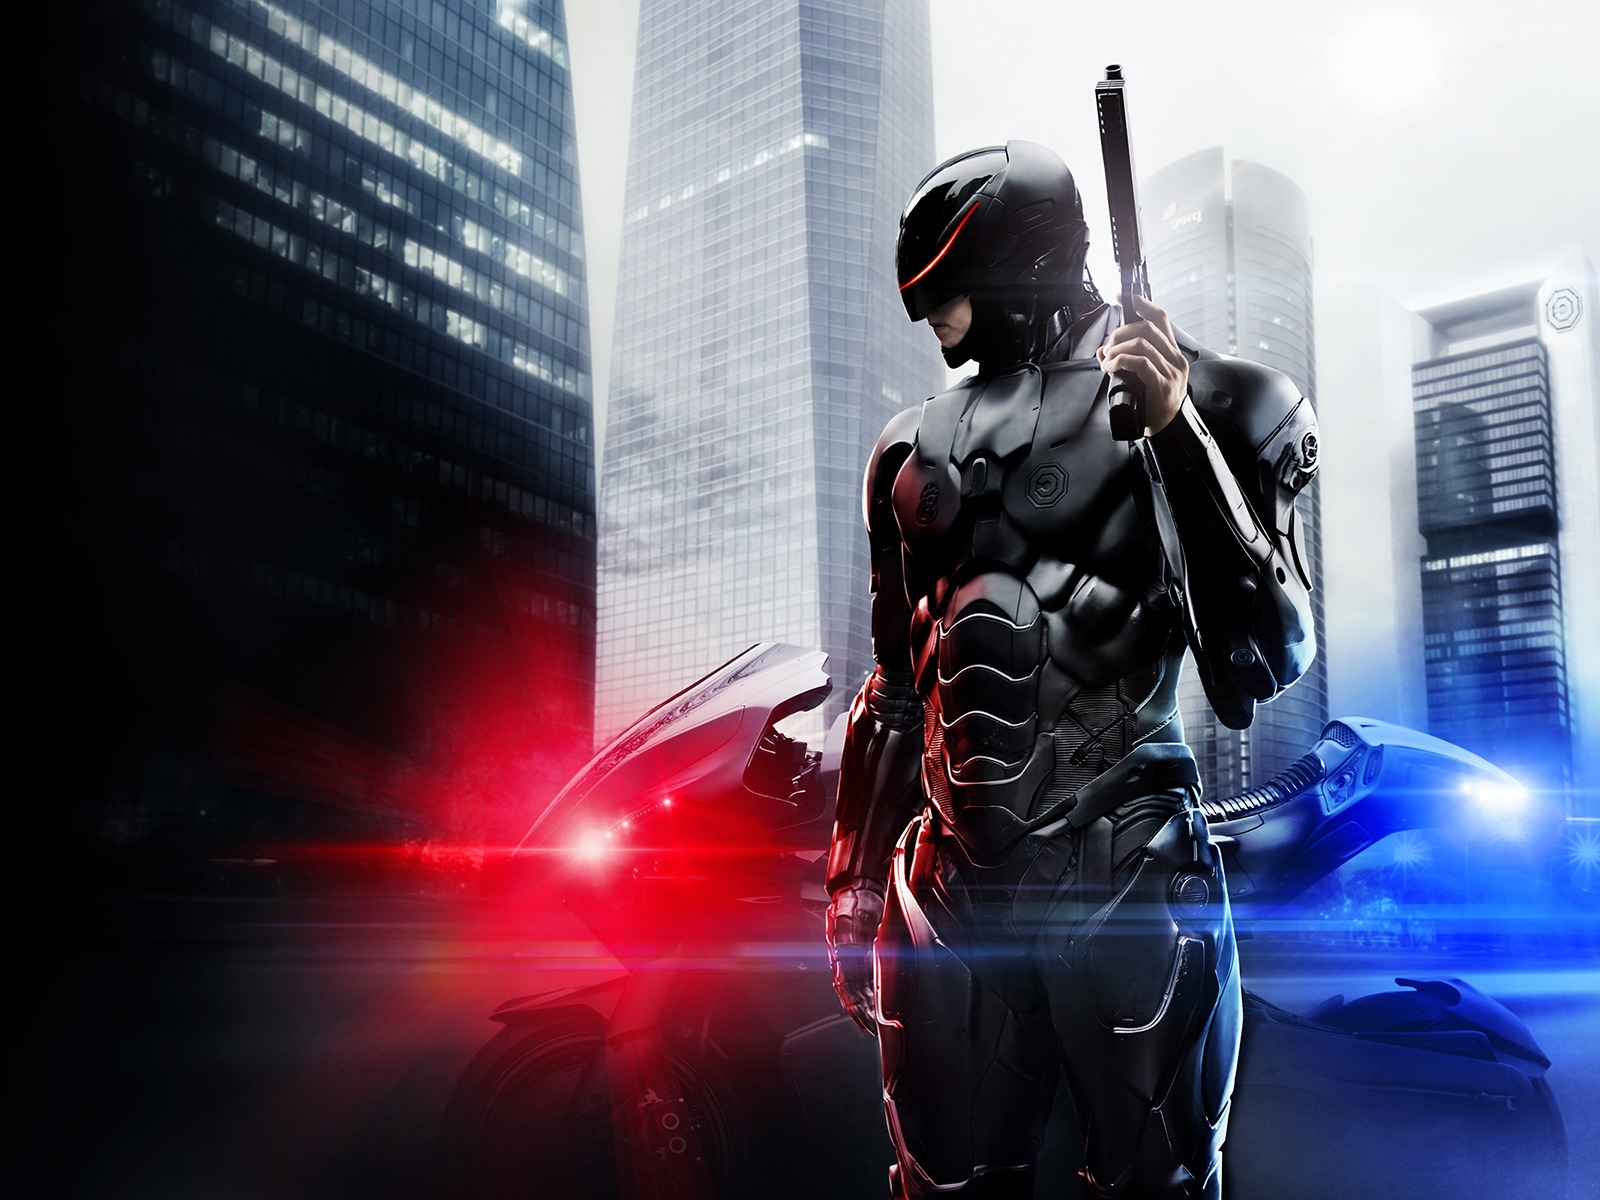 Robocop Movie 2014 for 1600 x 1200 resolution